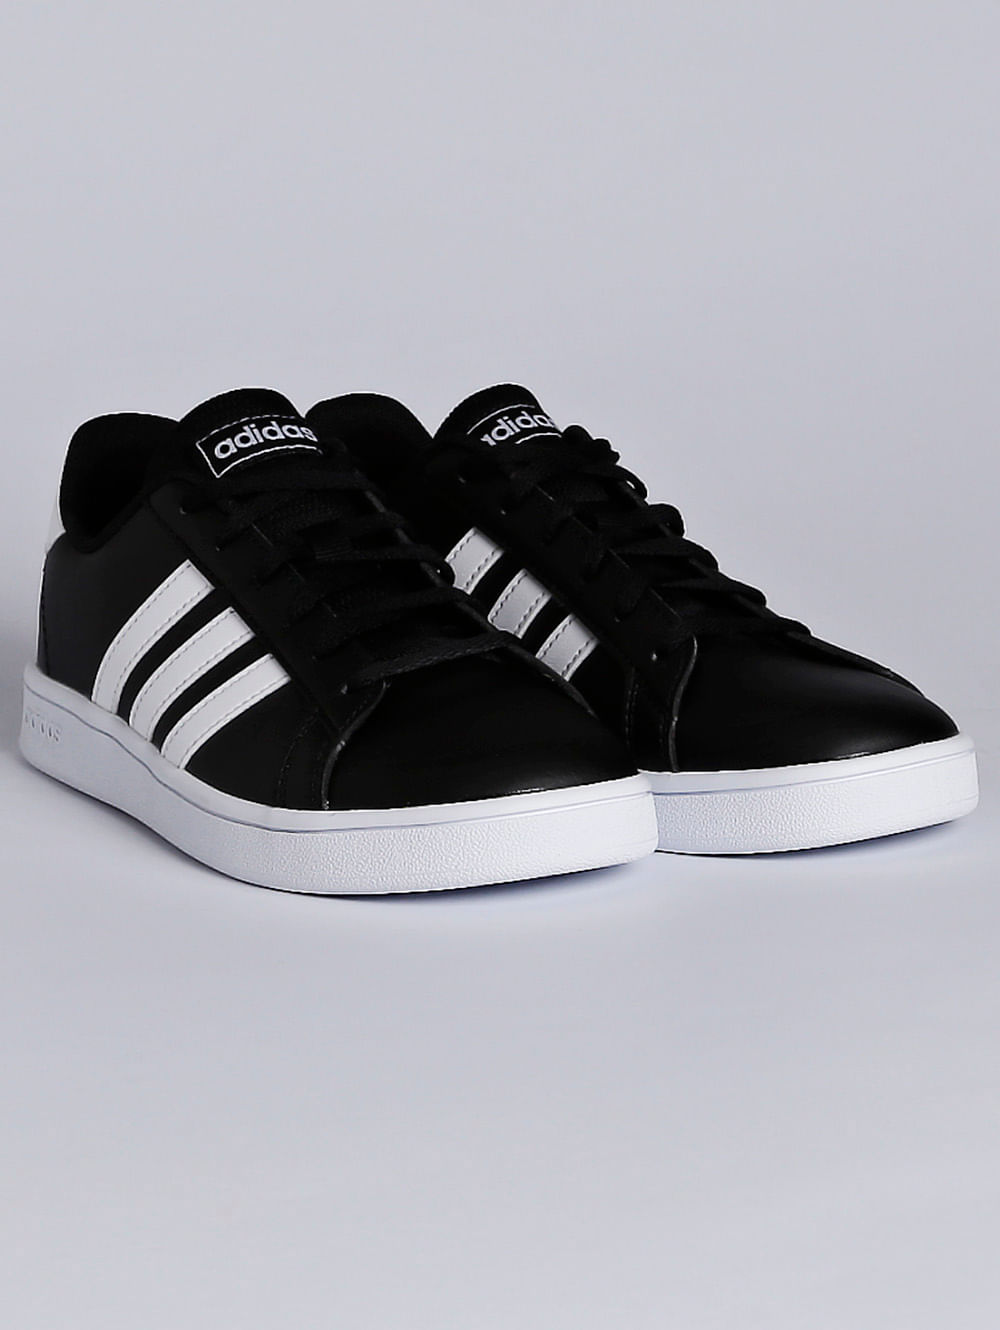 promo codes amazing selection meet Tênis Adidas Grand Court Juvenil para Menino - Preto/branco